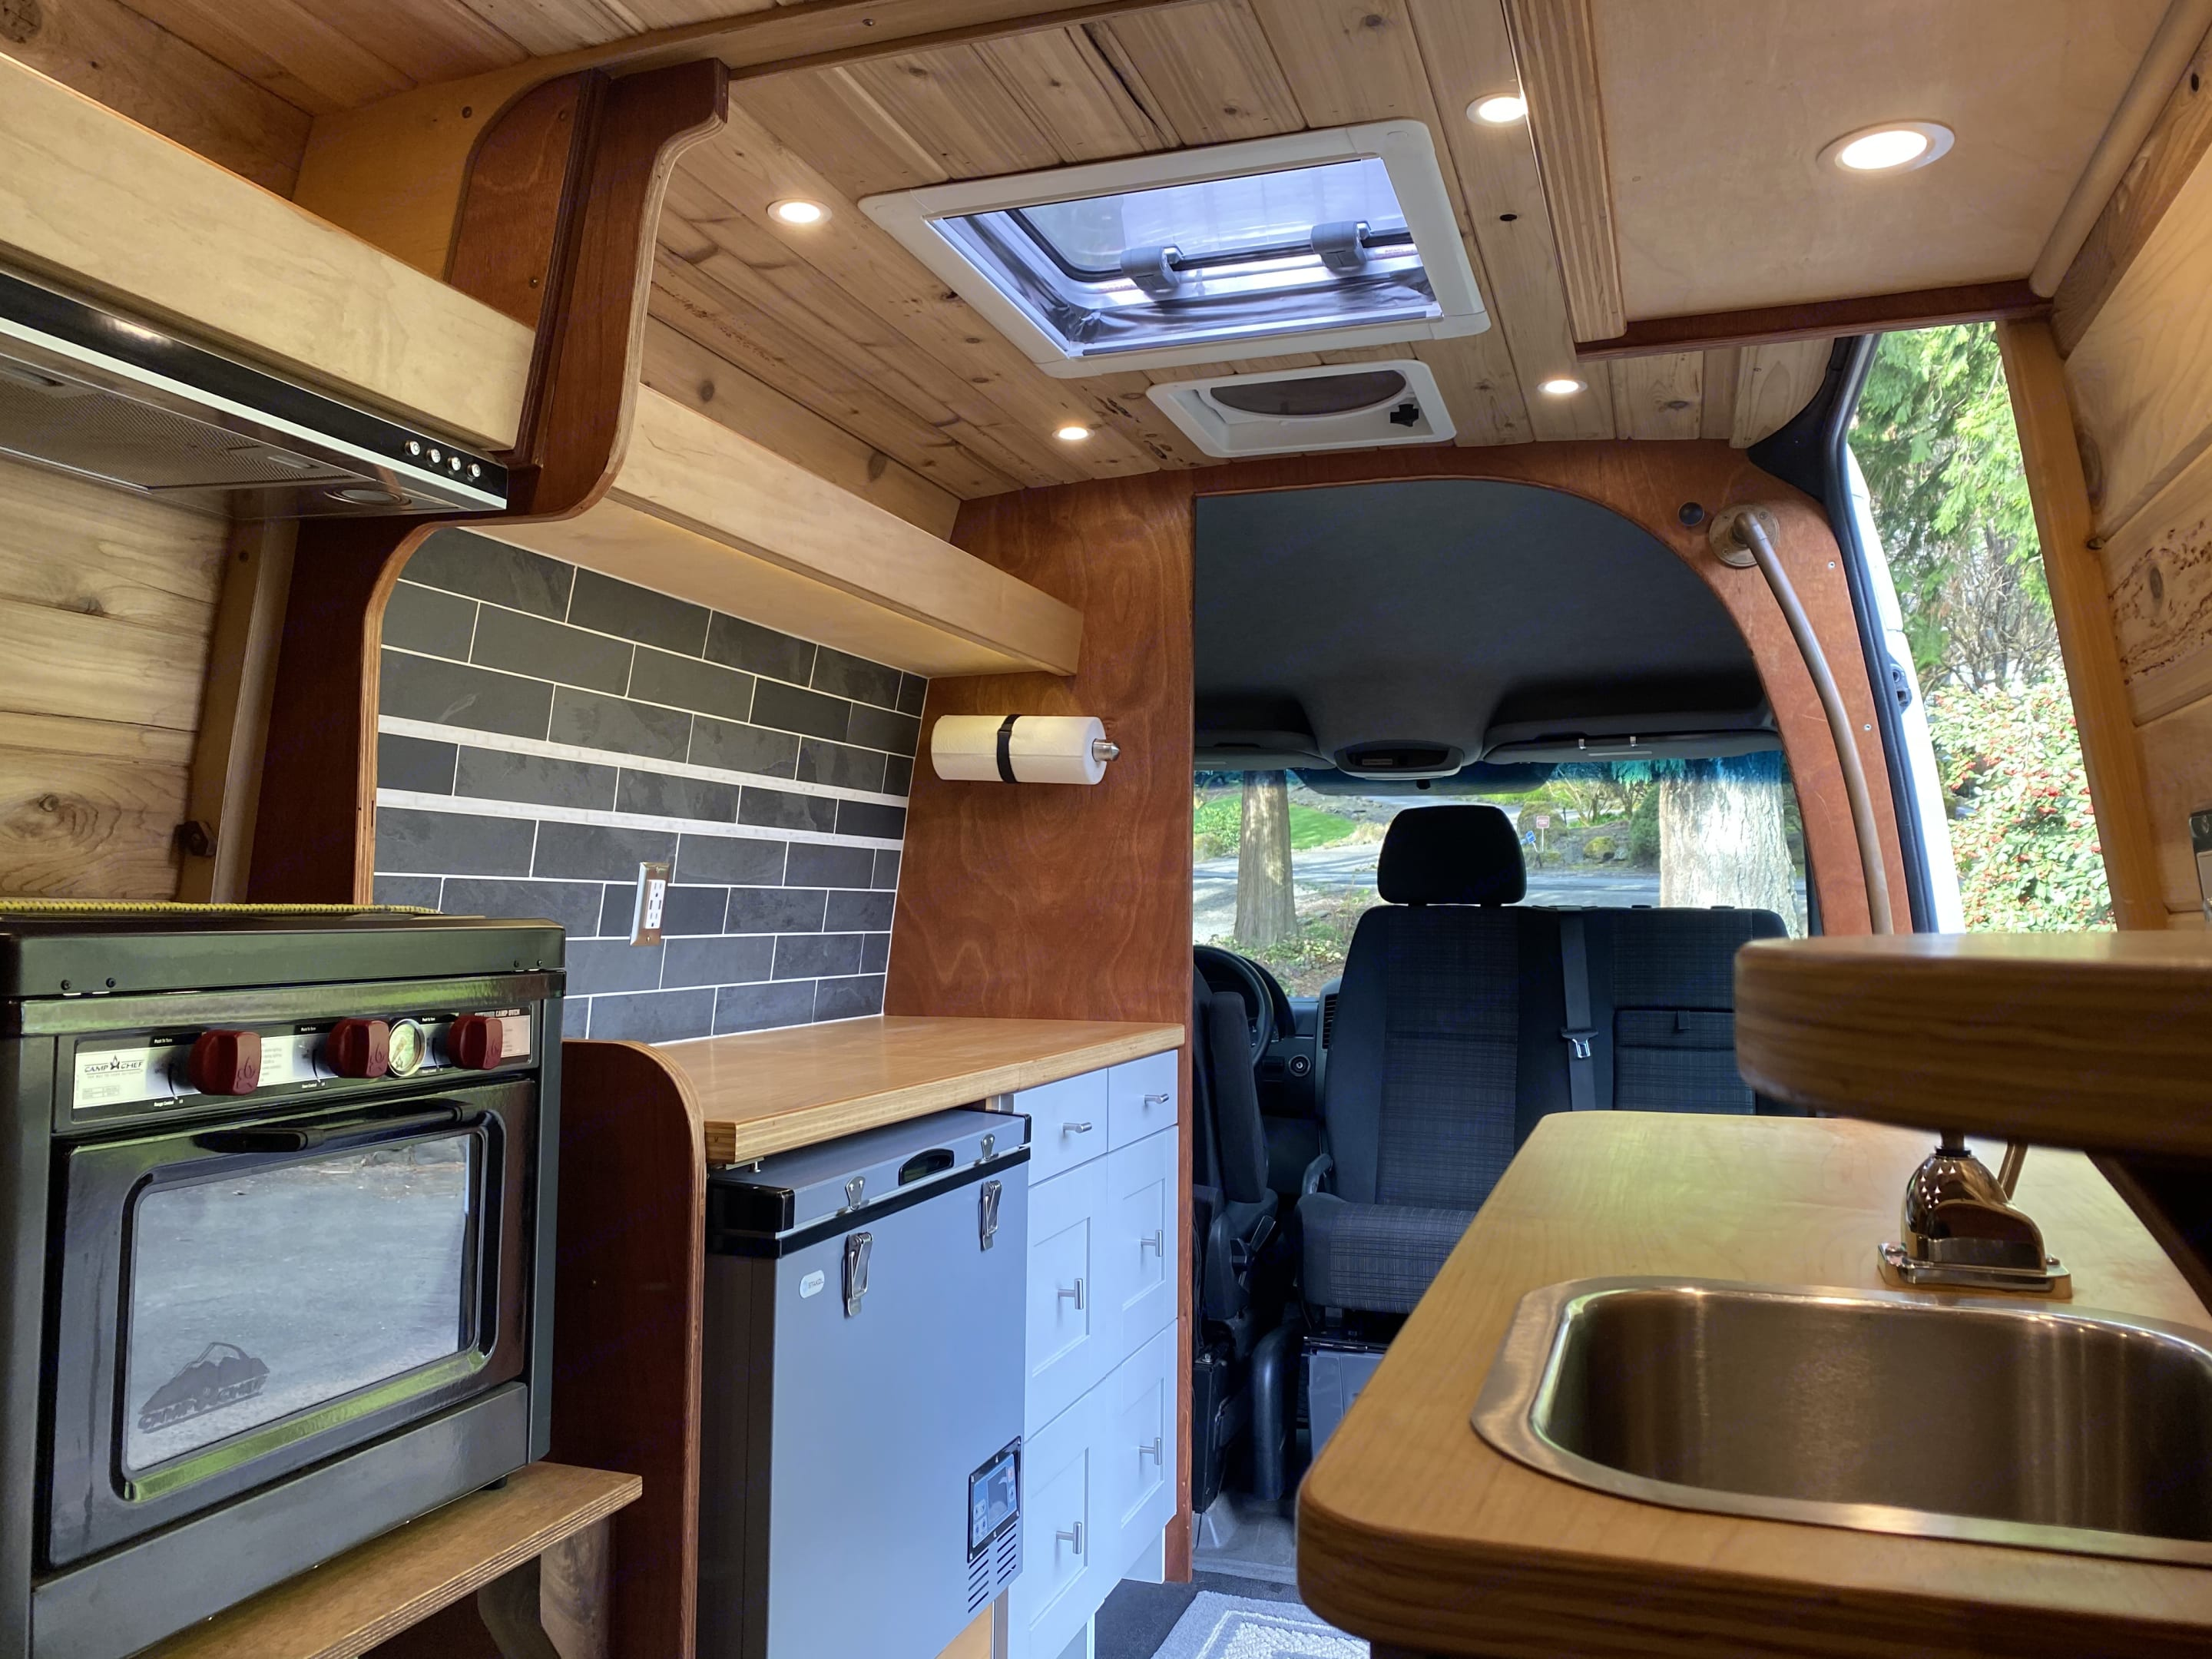 Lewmar Ocean 60 marine hatch lets in light from above during the daytime while three-zone dimmable lighting is ready for when night falls. Mercedes-Benz Sprinter 2008